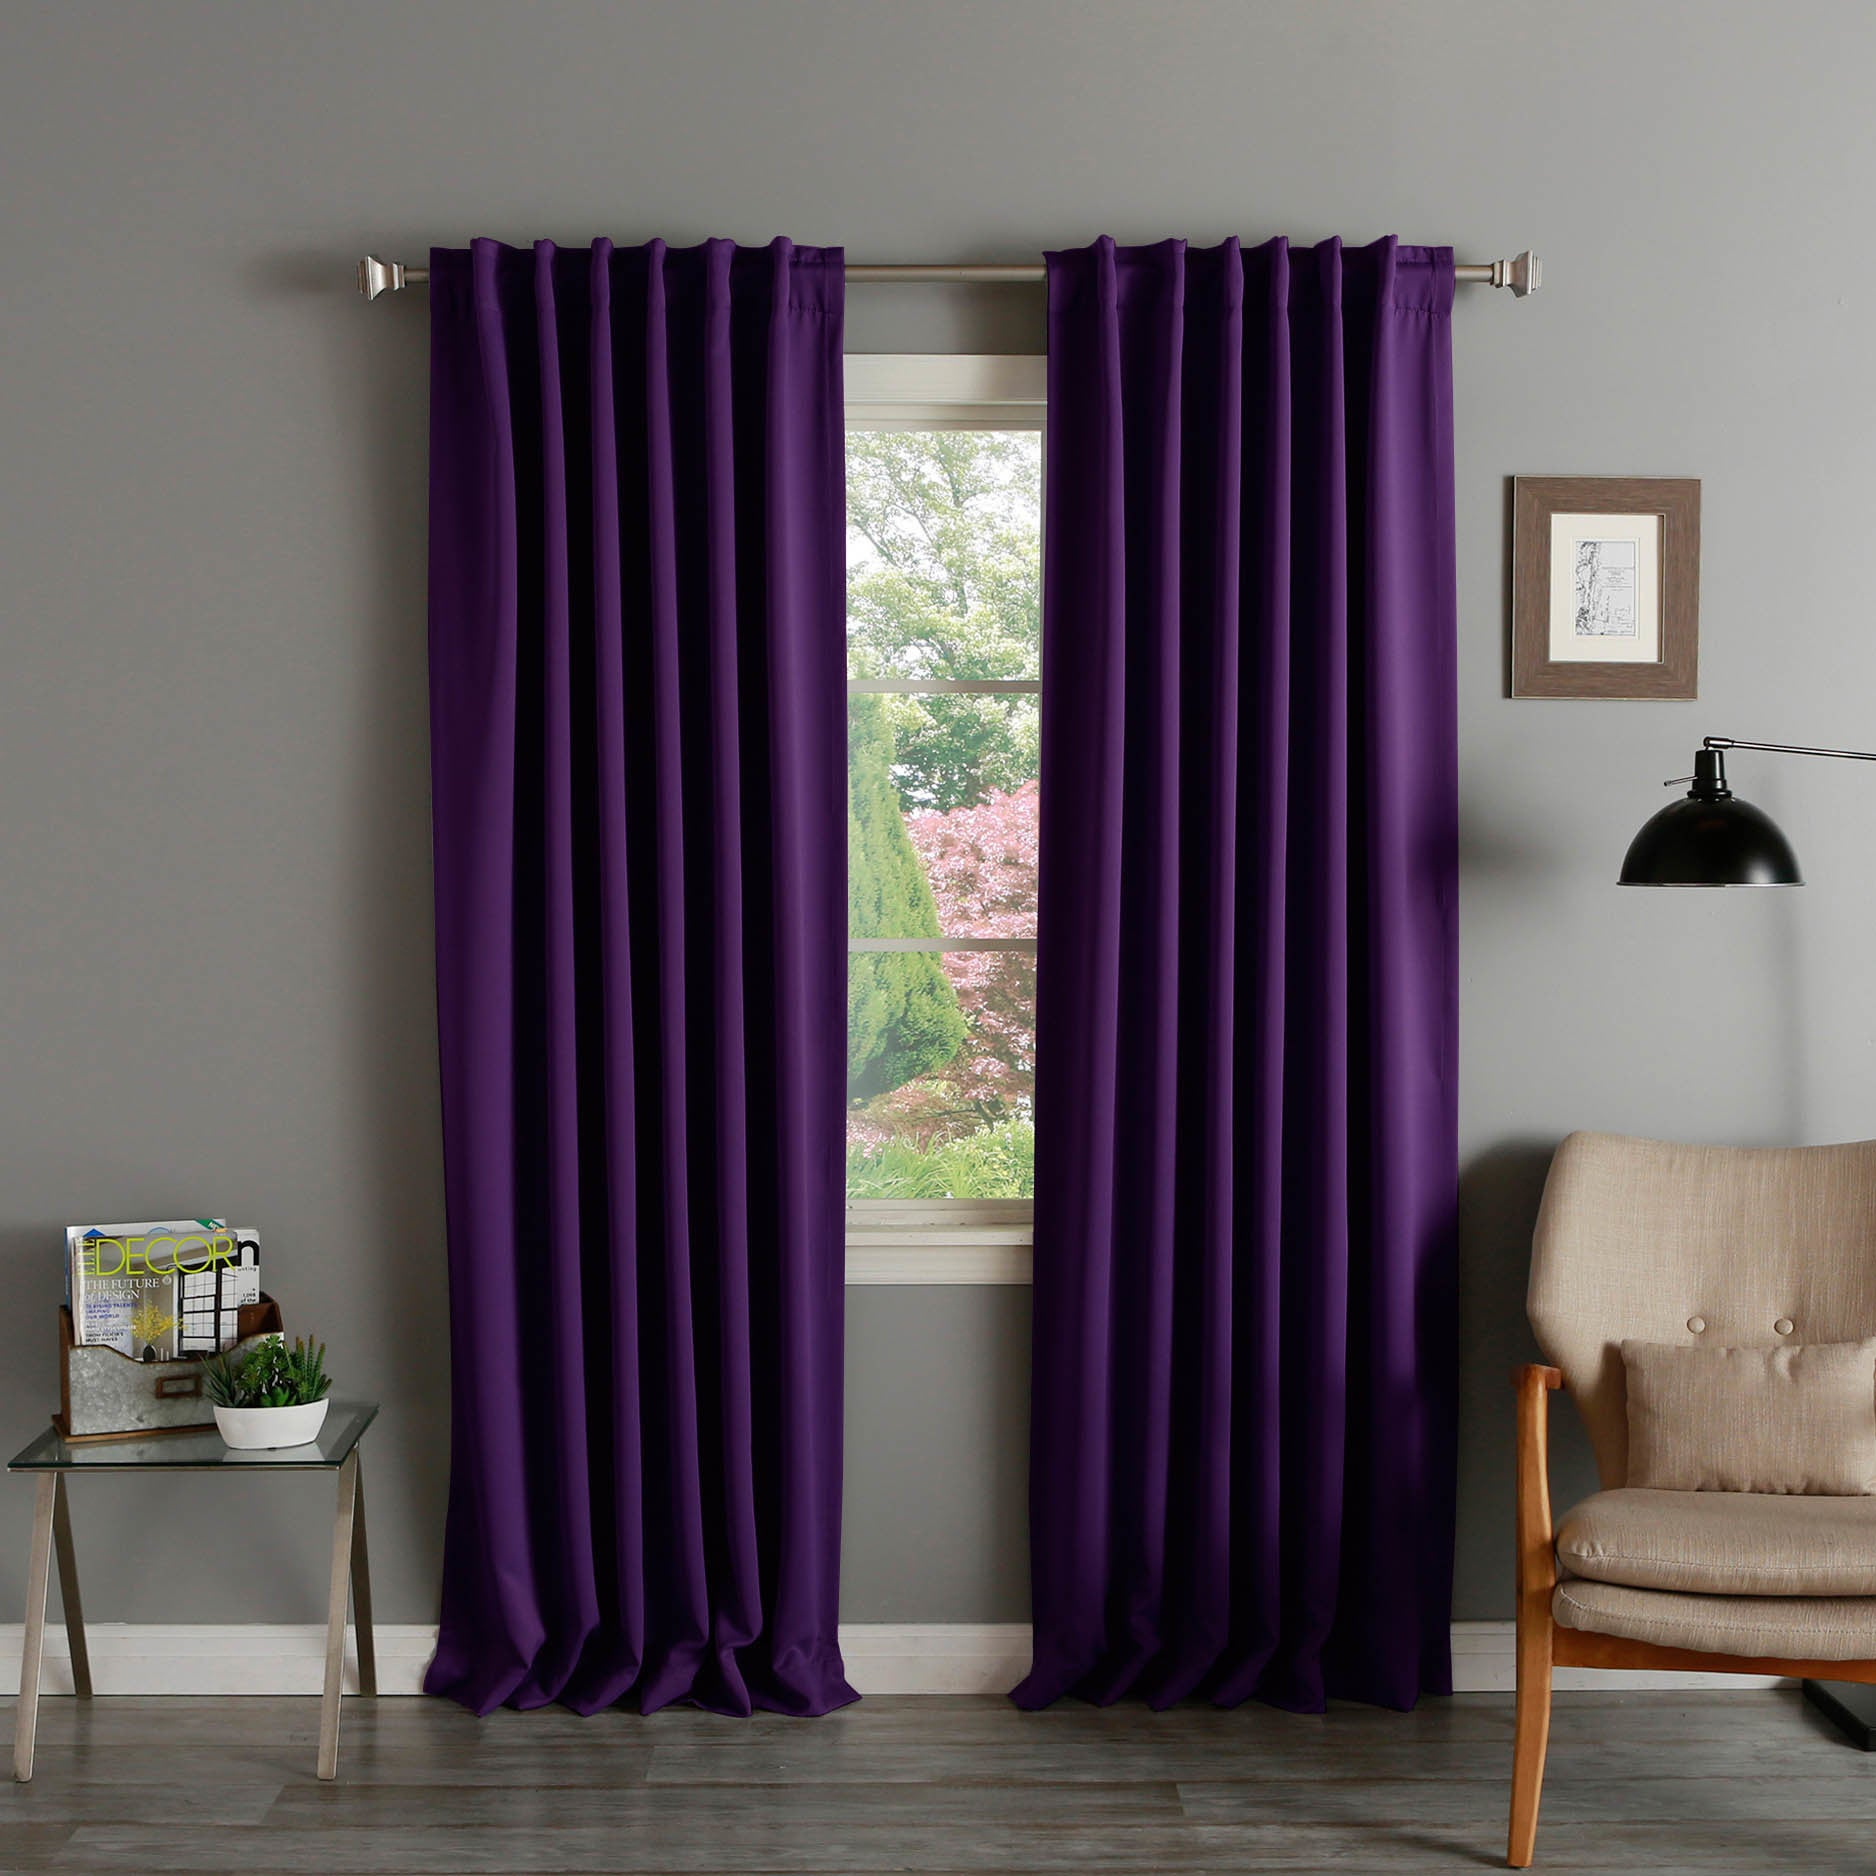 Details About Aurora Home Solid Insulated Thermal Blackout 120 Inch Curtain Panel Pair With Solid Thermal Insulated Blackout Curtain Panel Pairs (View 10 of 30)